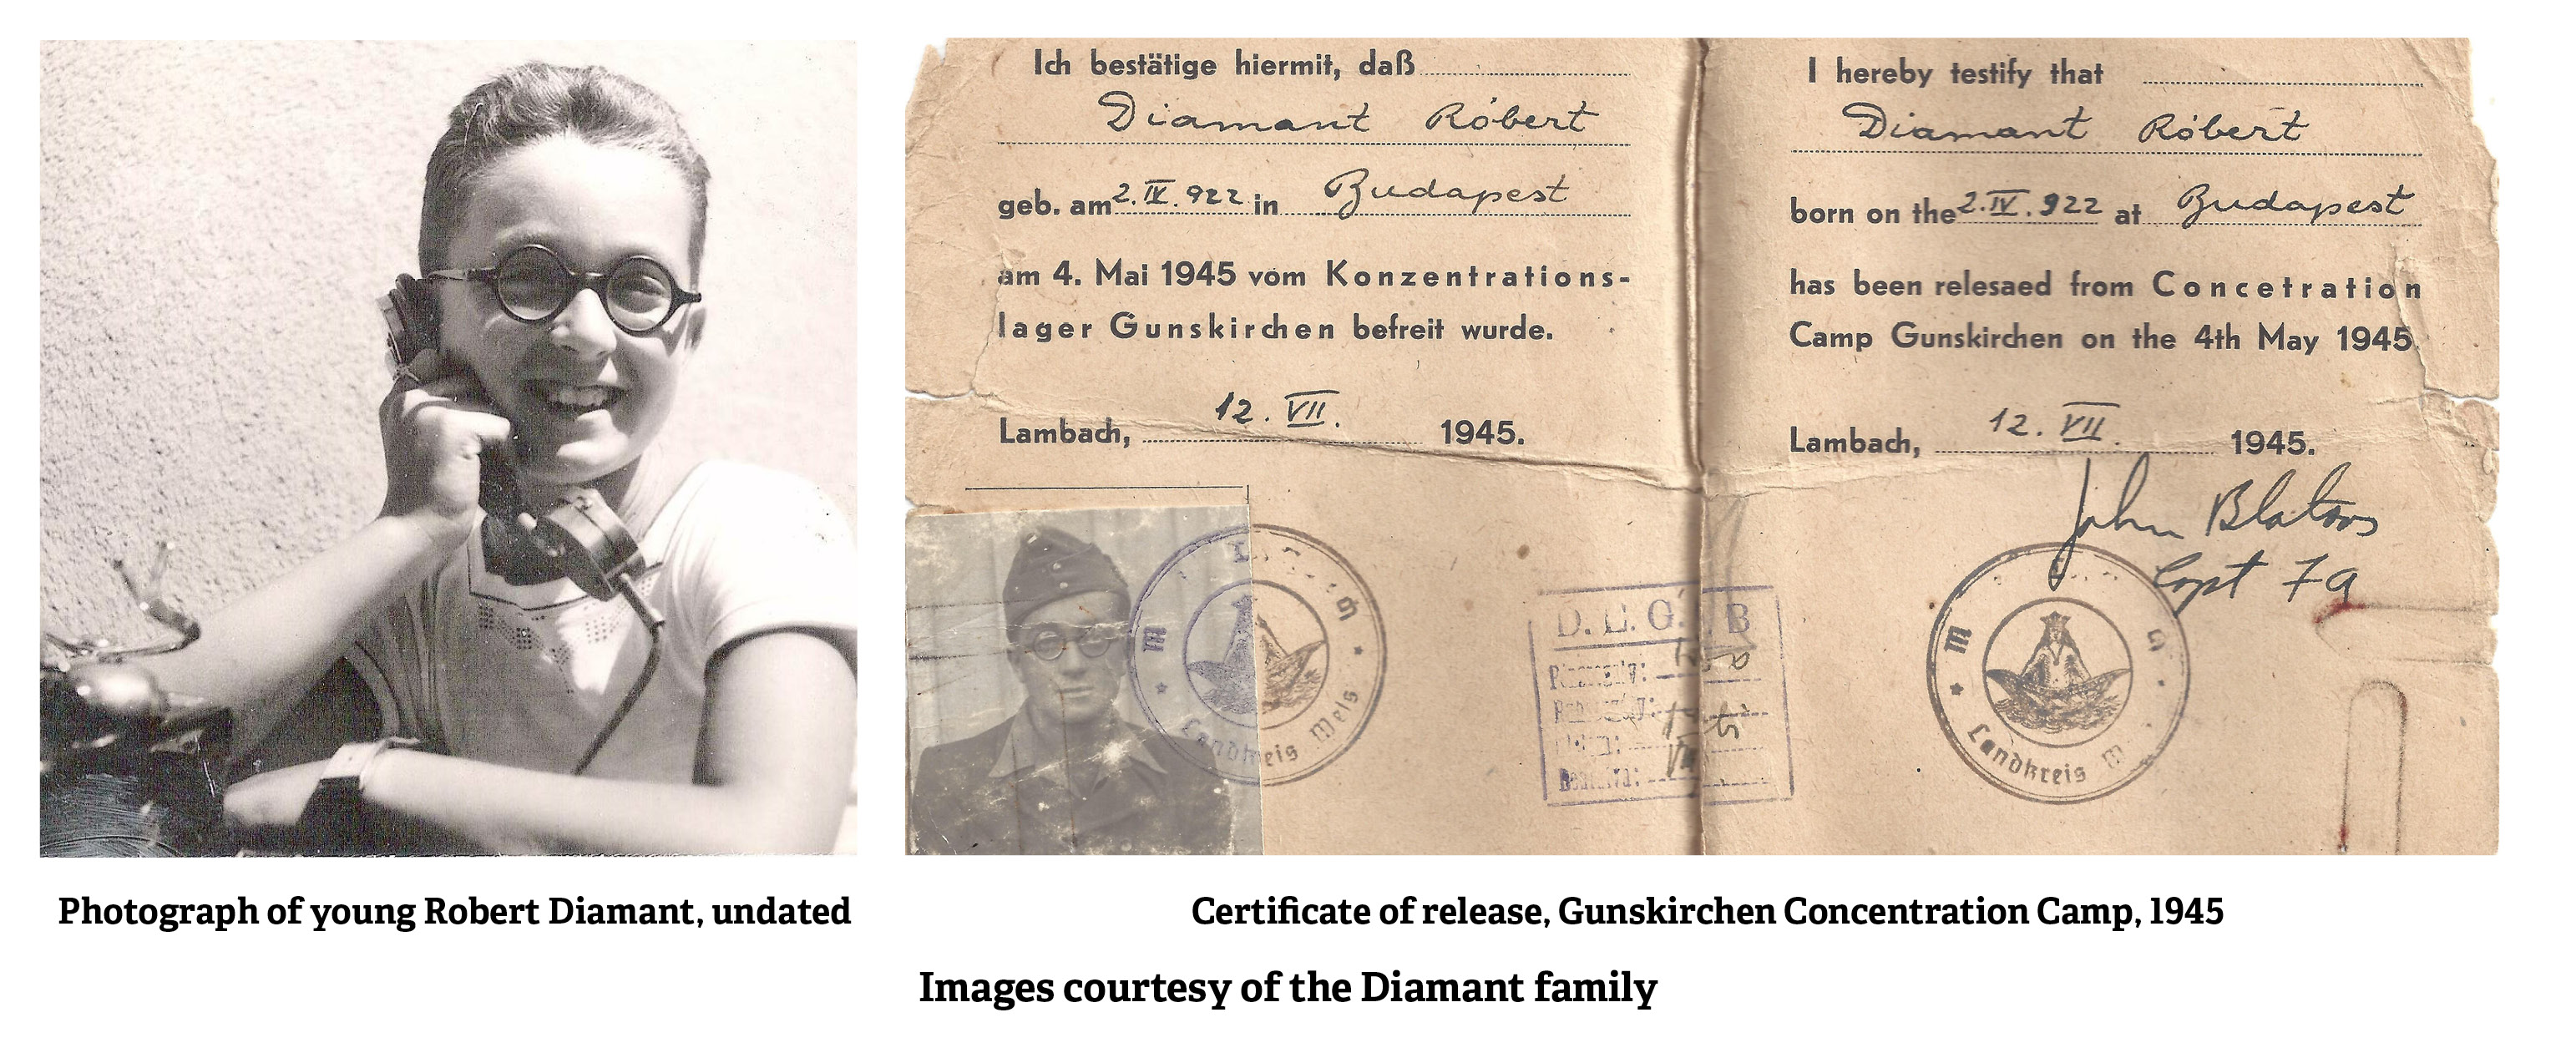 Photograph of young Robert Diamant, undated and Certificate of release, Gunskirchen Concentration Camp, 1945